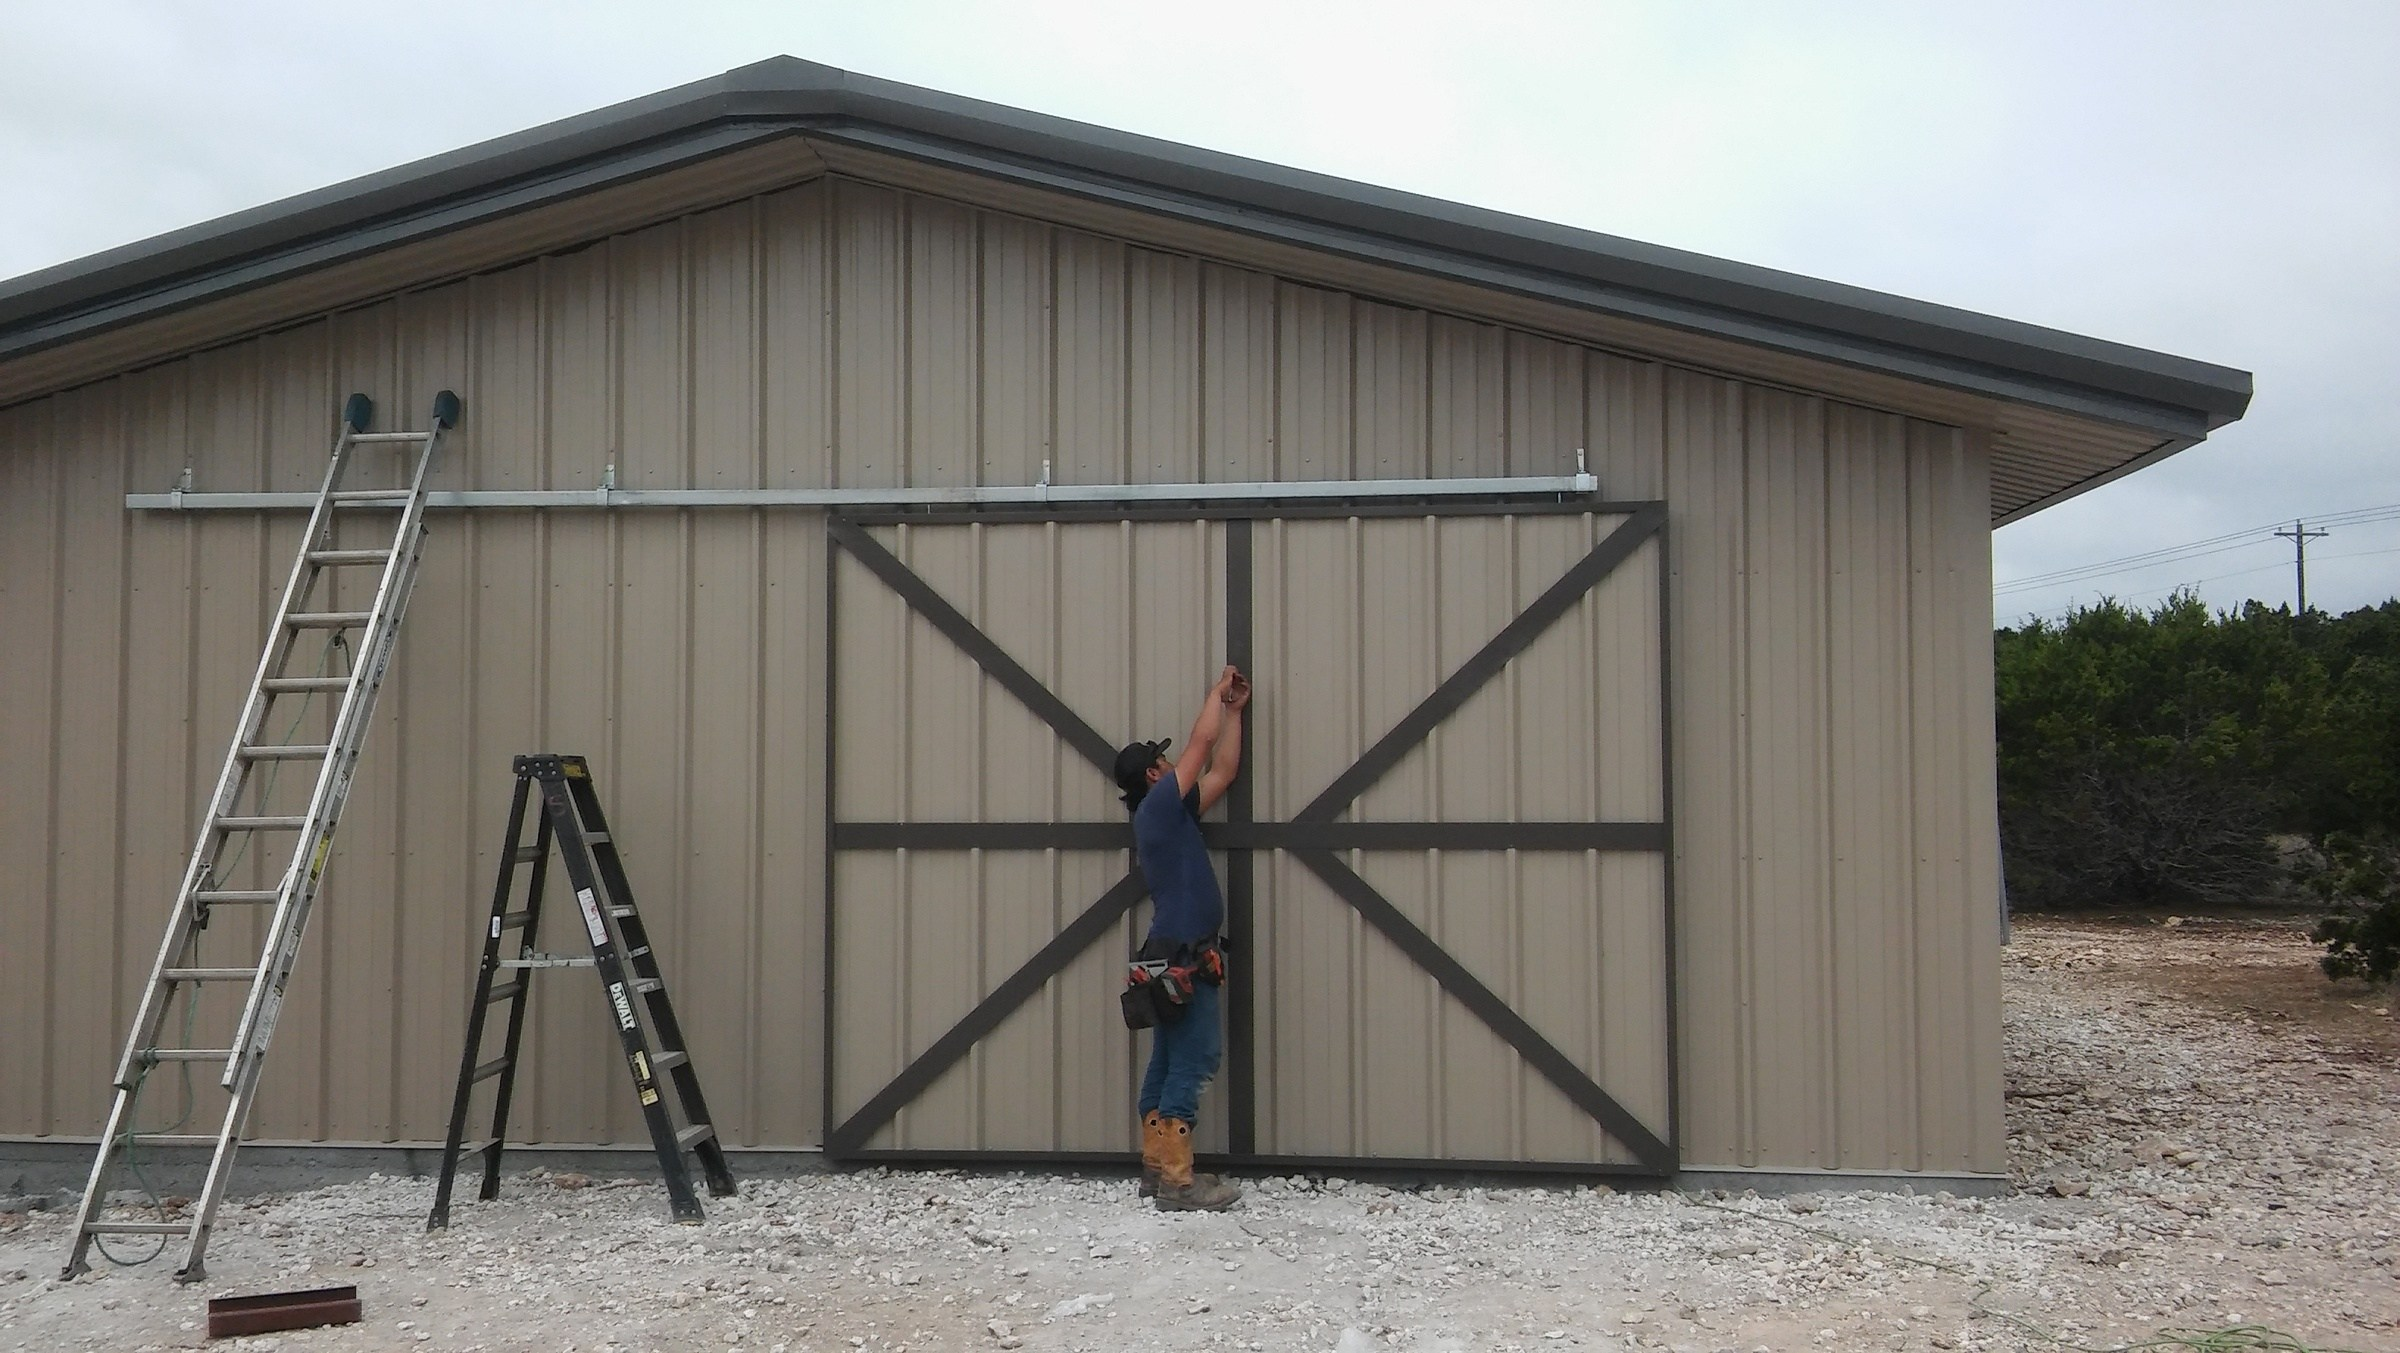 Custom designed metal door fabricated by Eric for the metal building at Baker Sanctuary, Travis Audubon.  metal door, custom designed